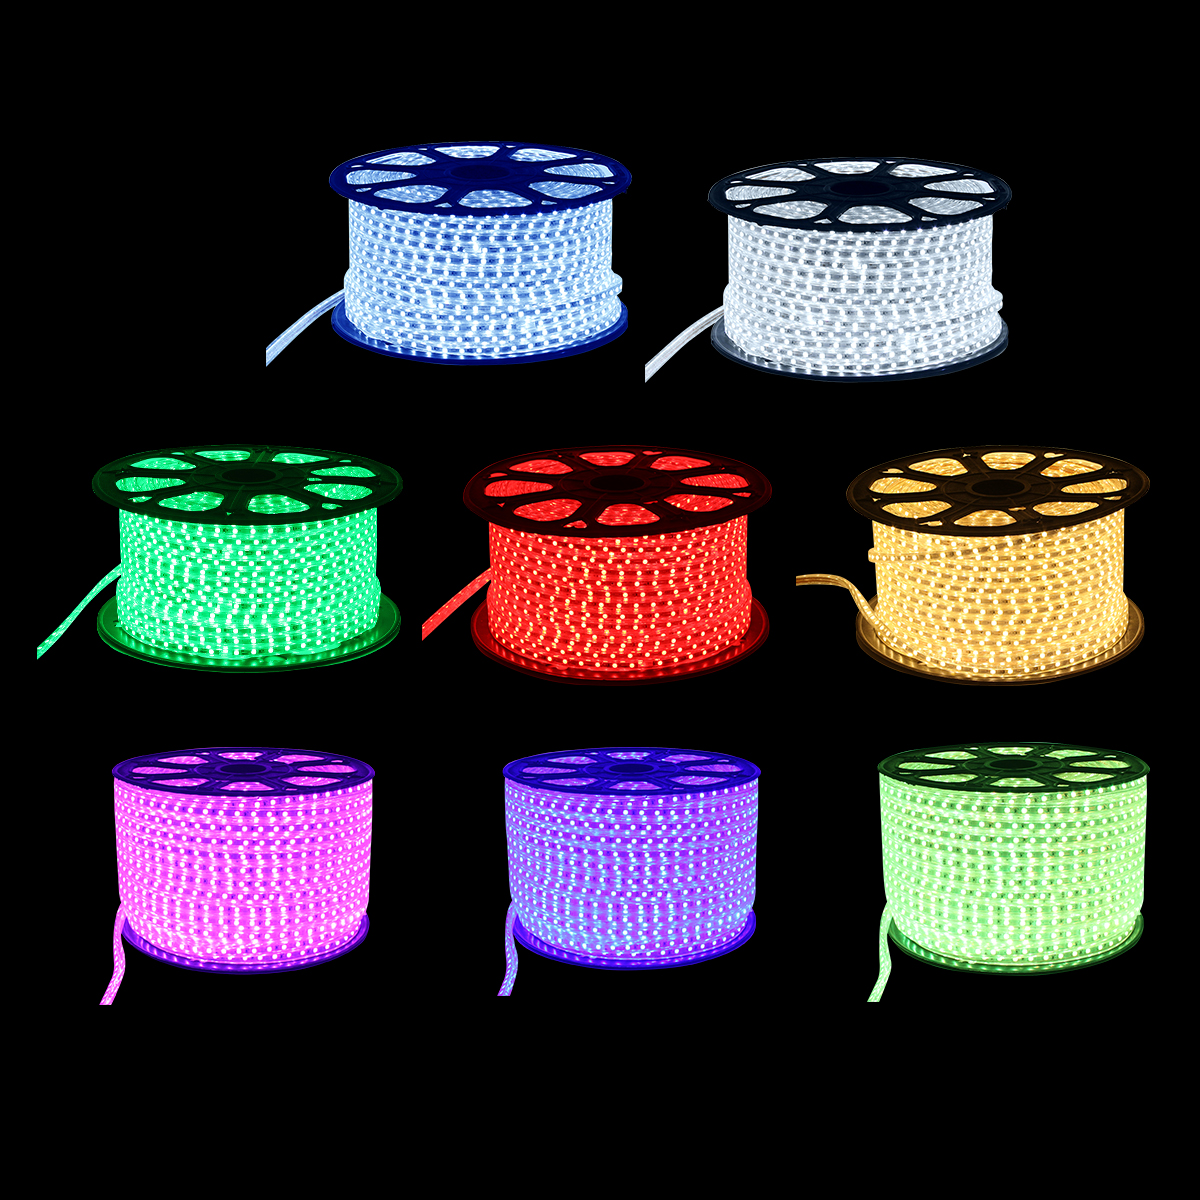 20M LED Strip Light 220V 60 LEDs/ meter IP67 Waterproof Ultra Bright Flexible 5050 SMD LED Outdoor Garden Home Strip Rope Light